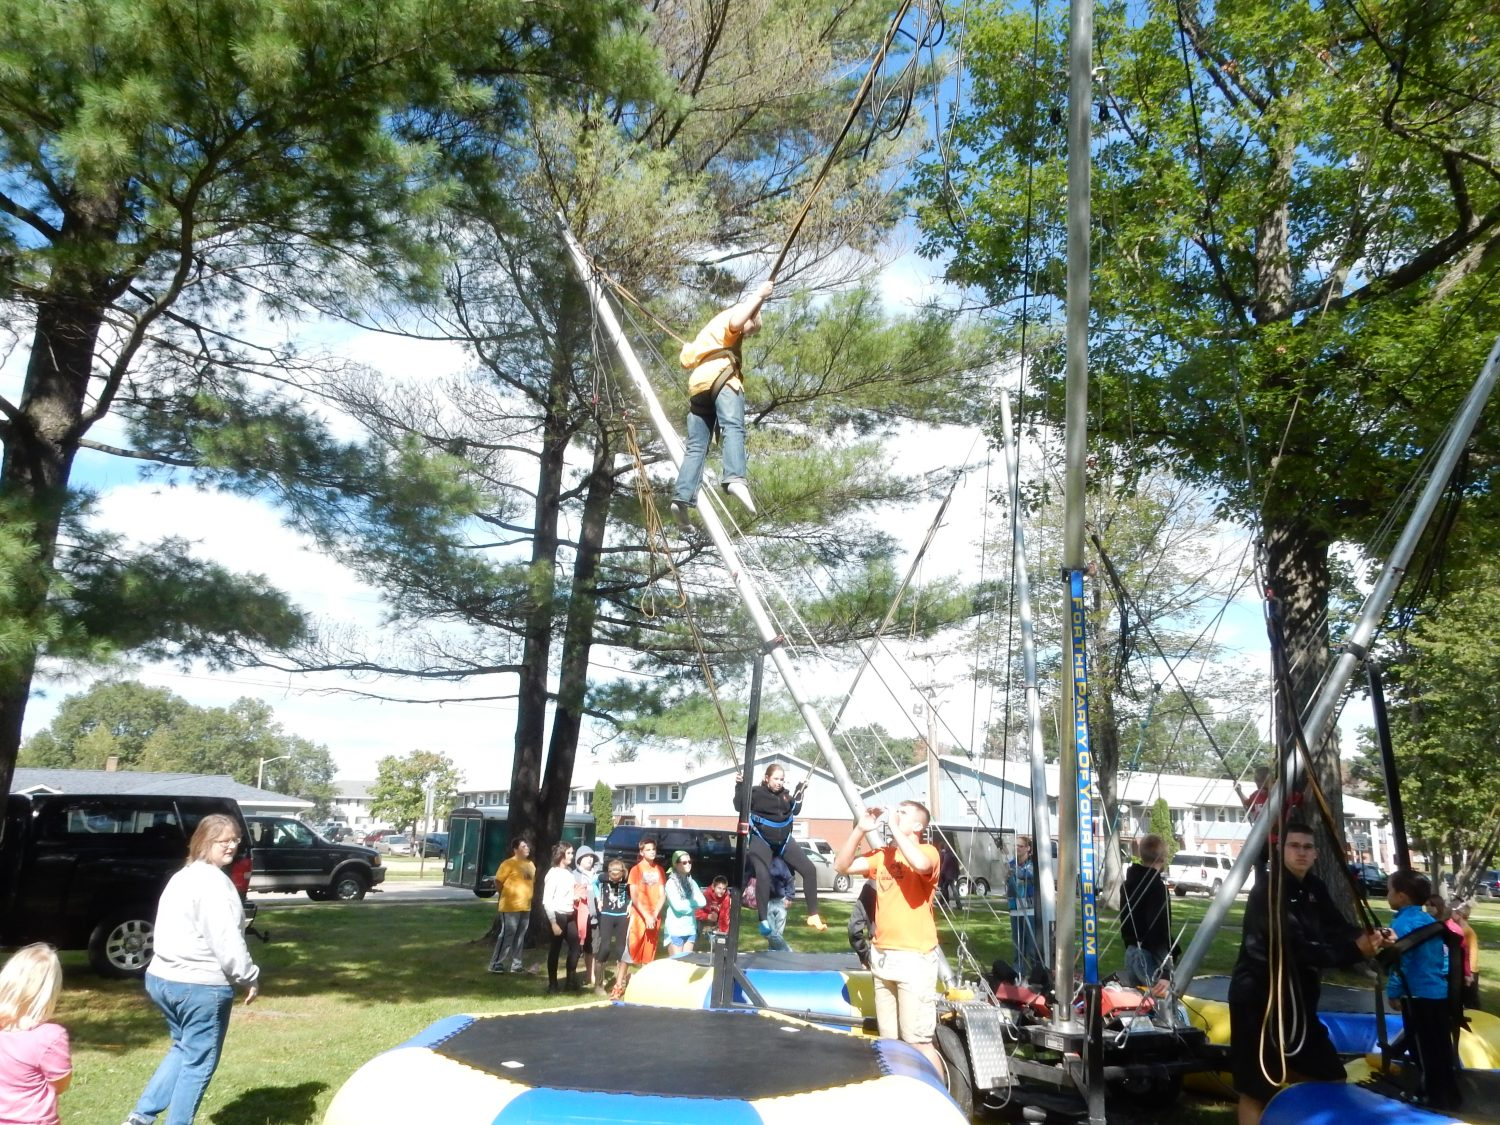 Games, entertainment, food, and crafts all on display at Maple Fall Fest.